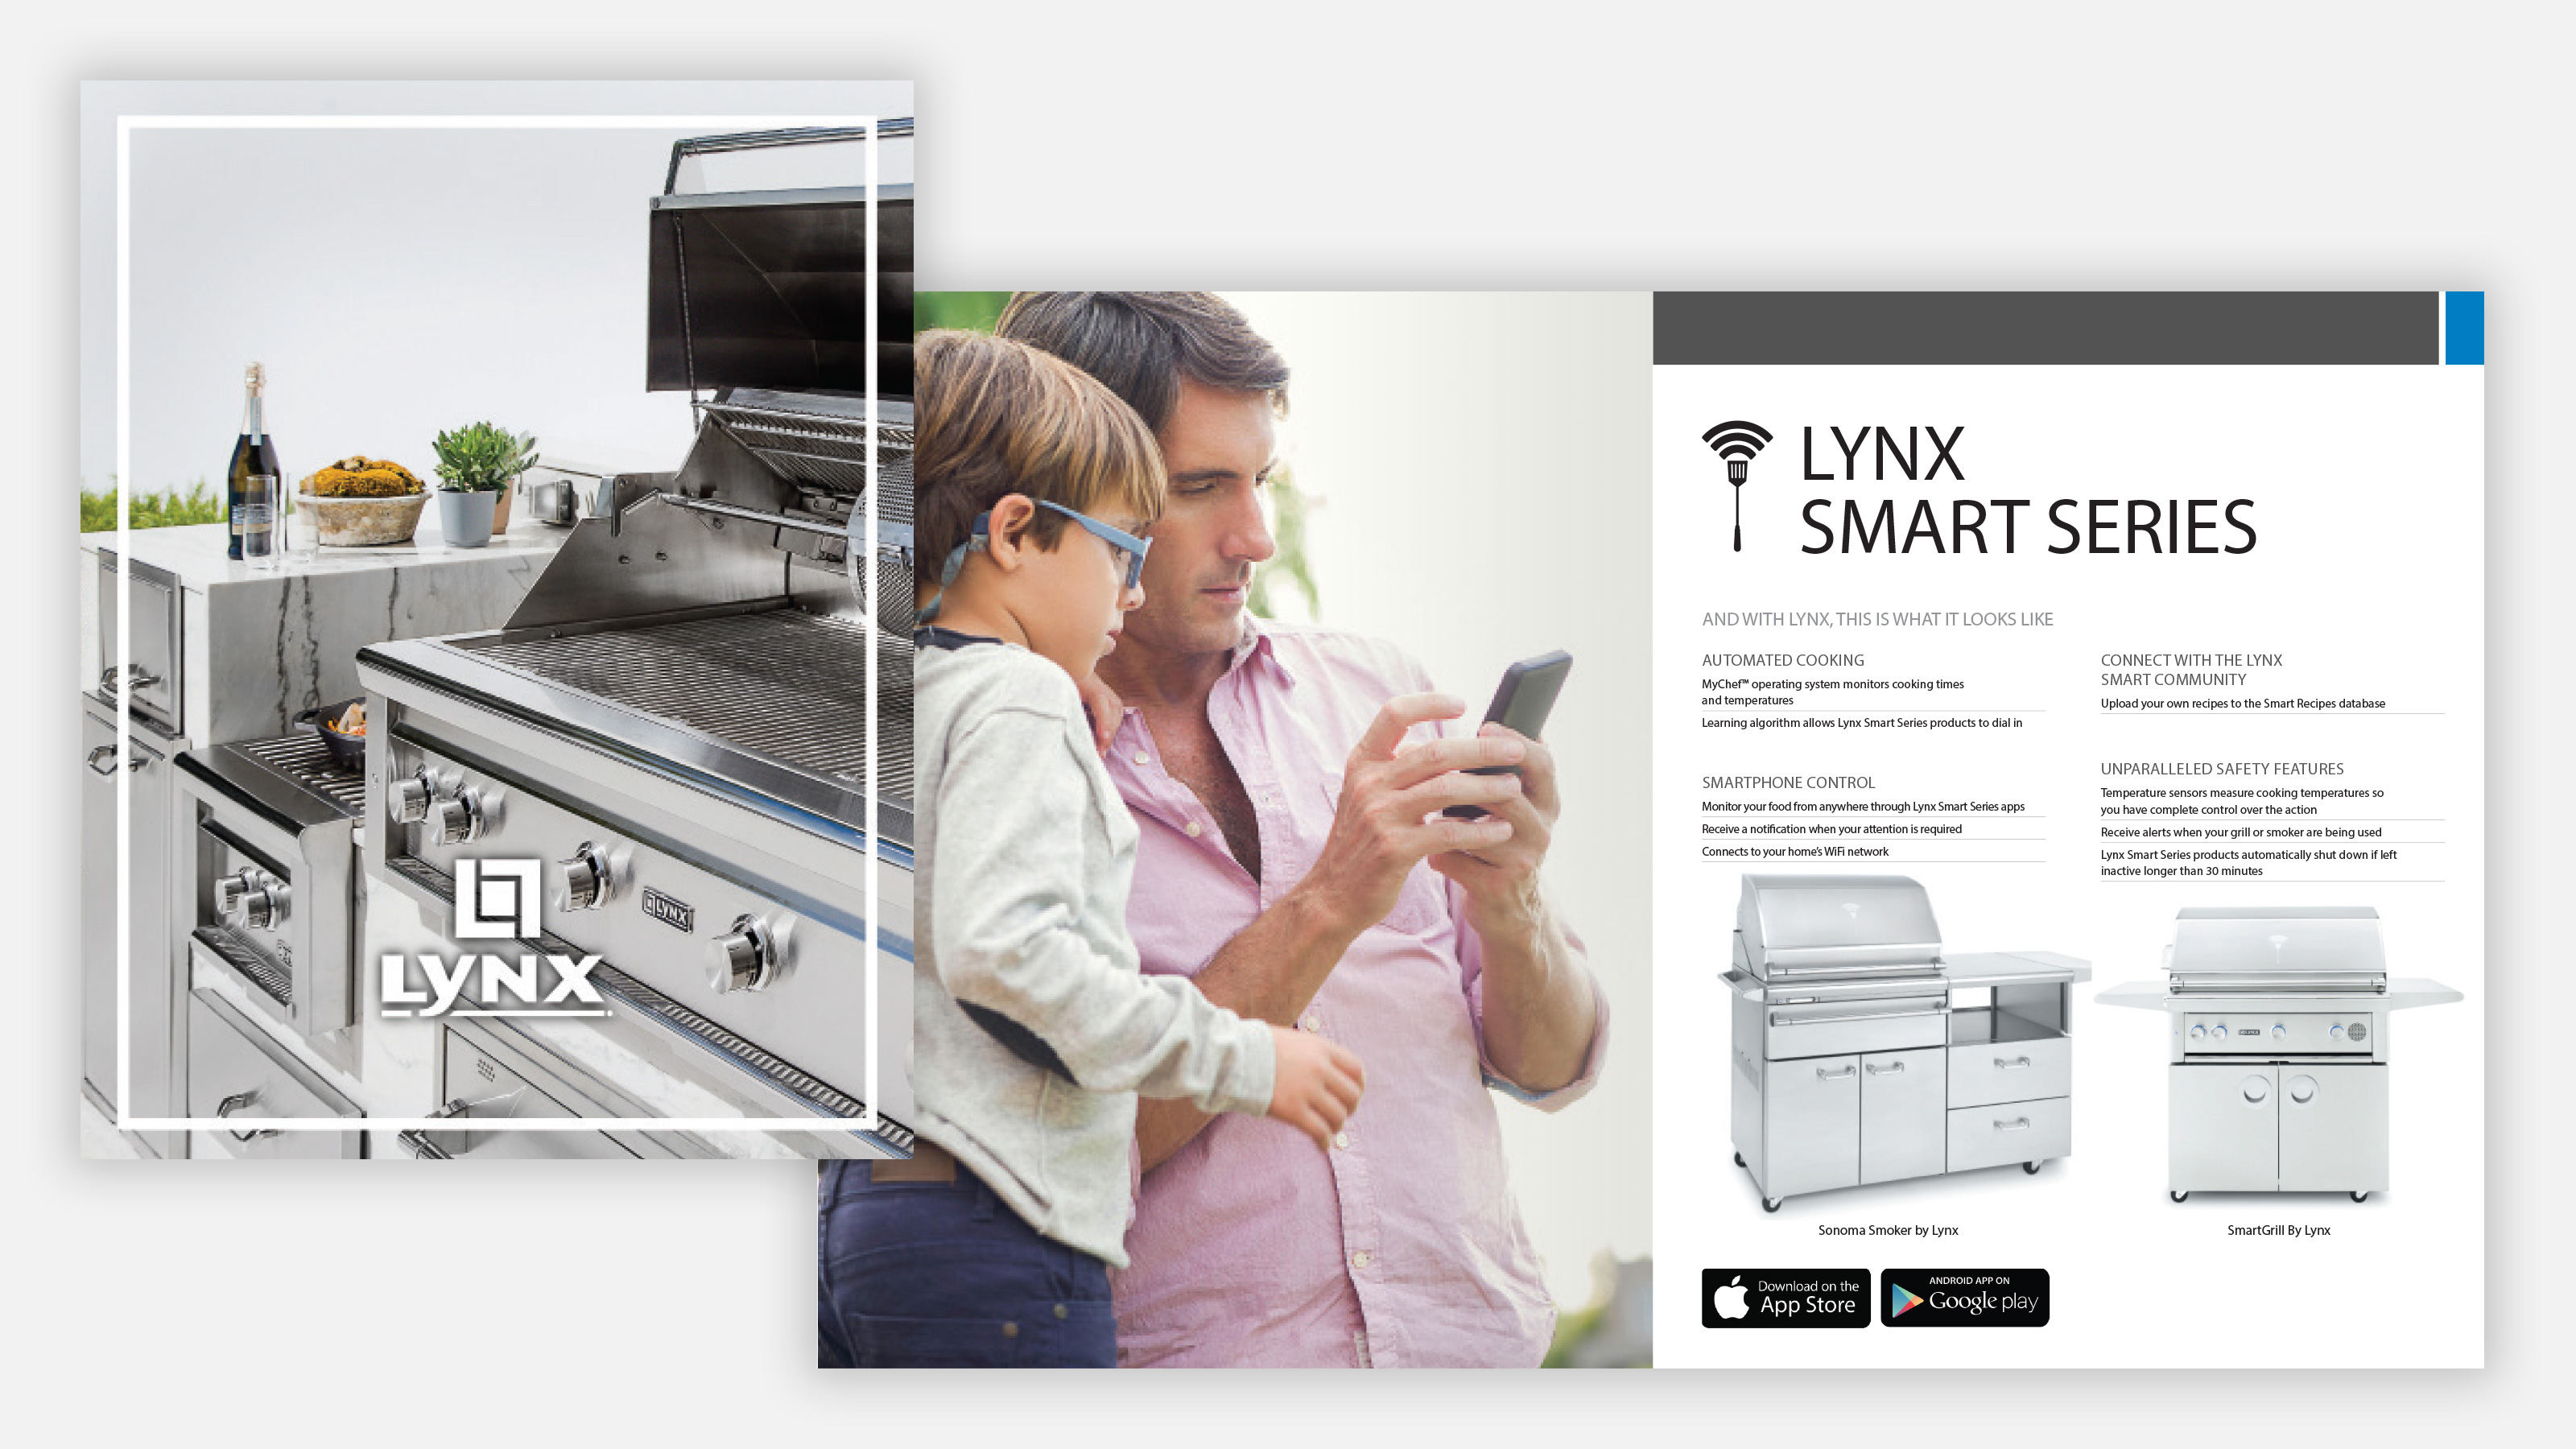 lynx smart series marketing brochure